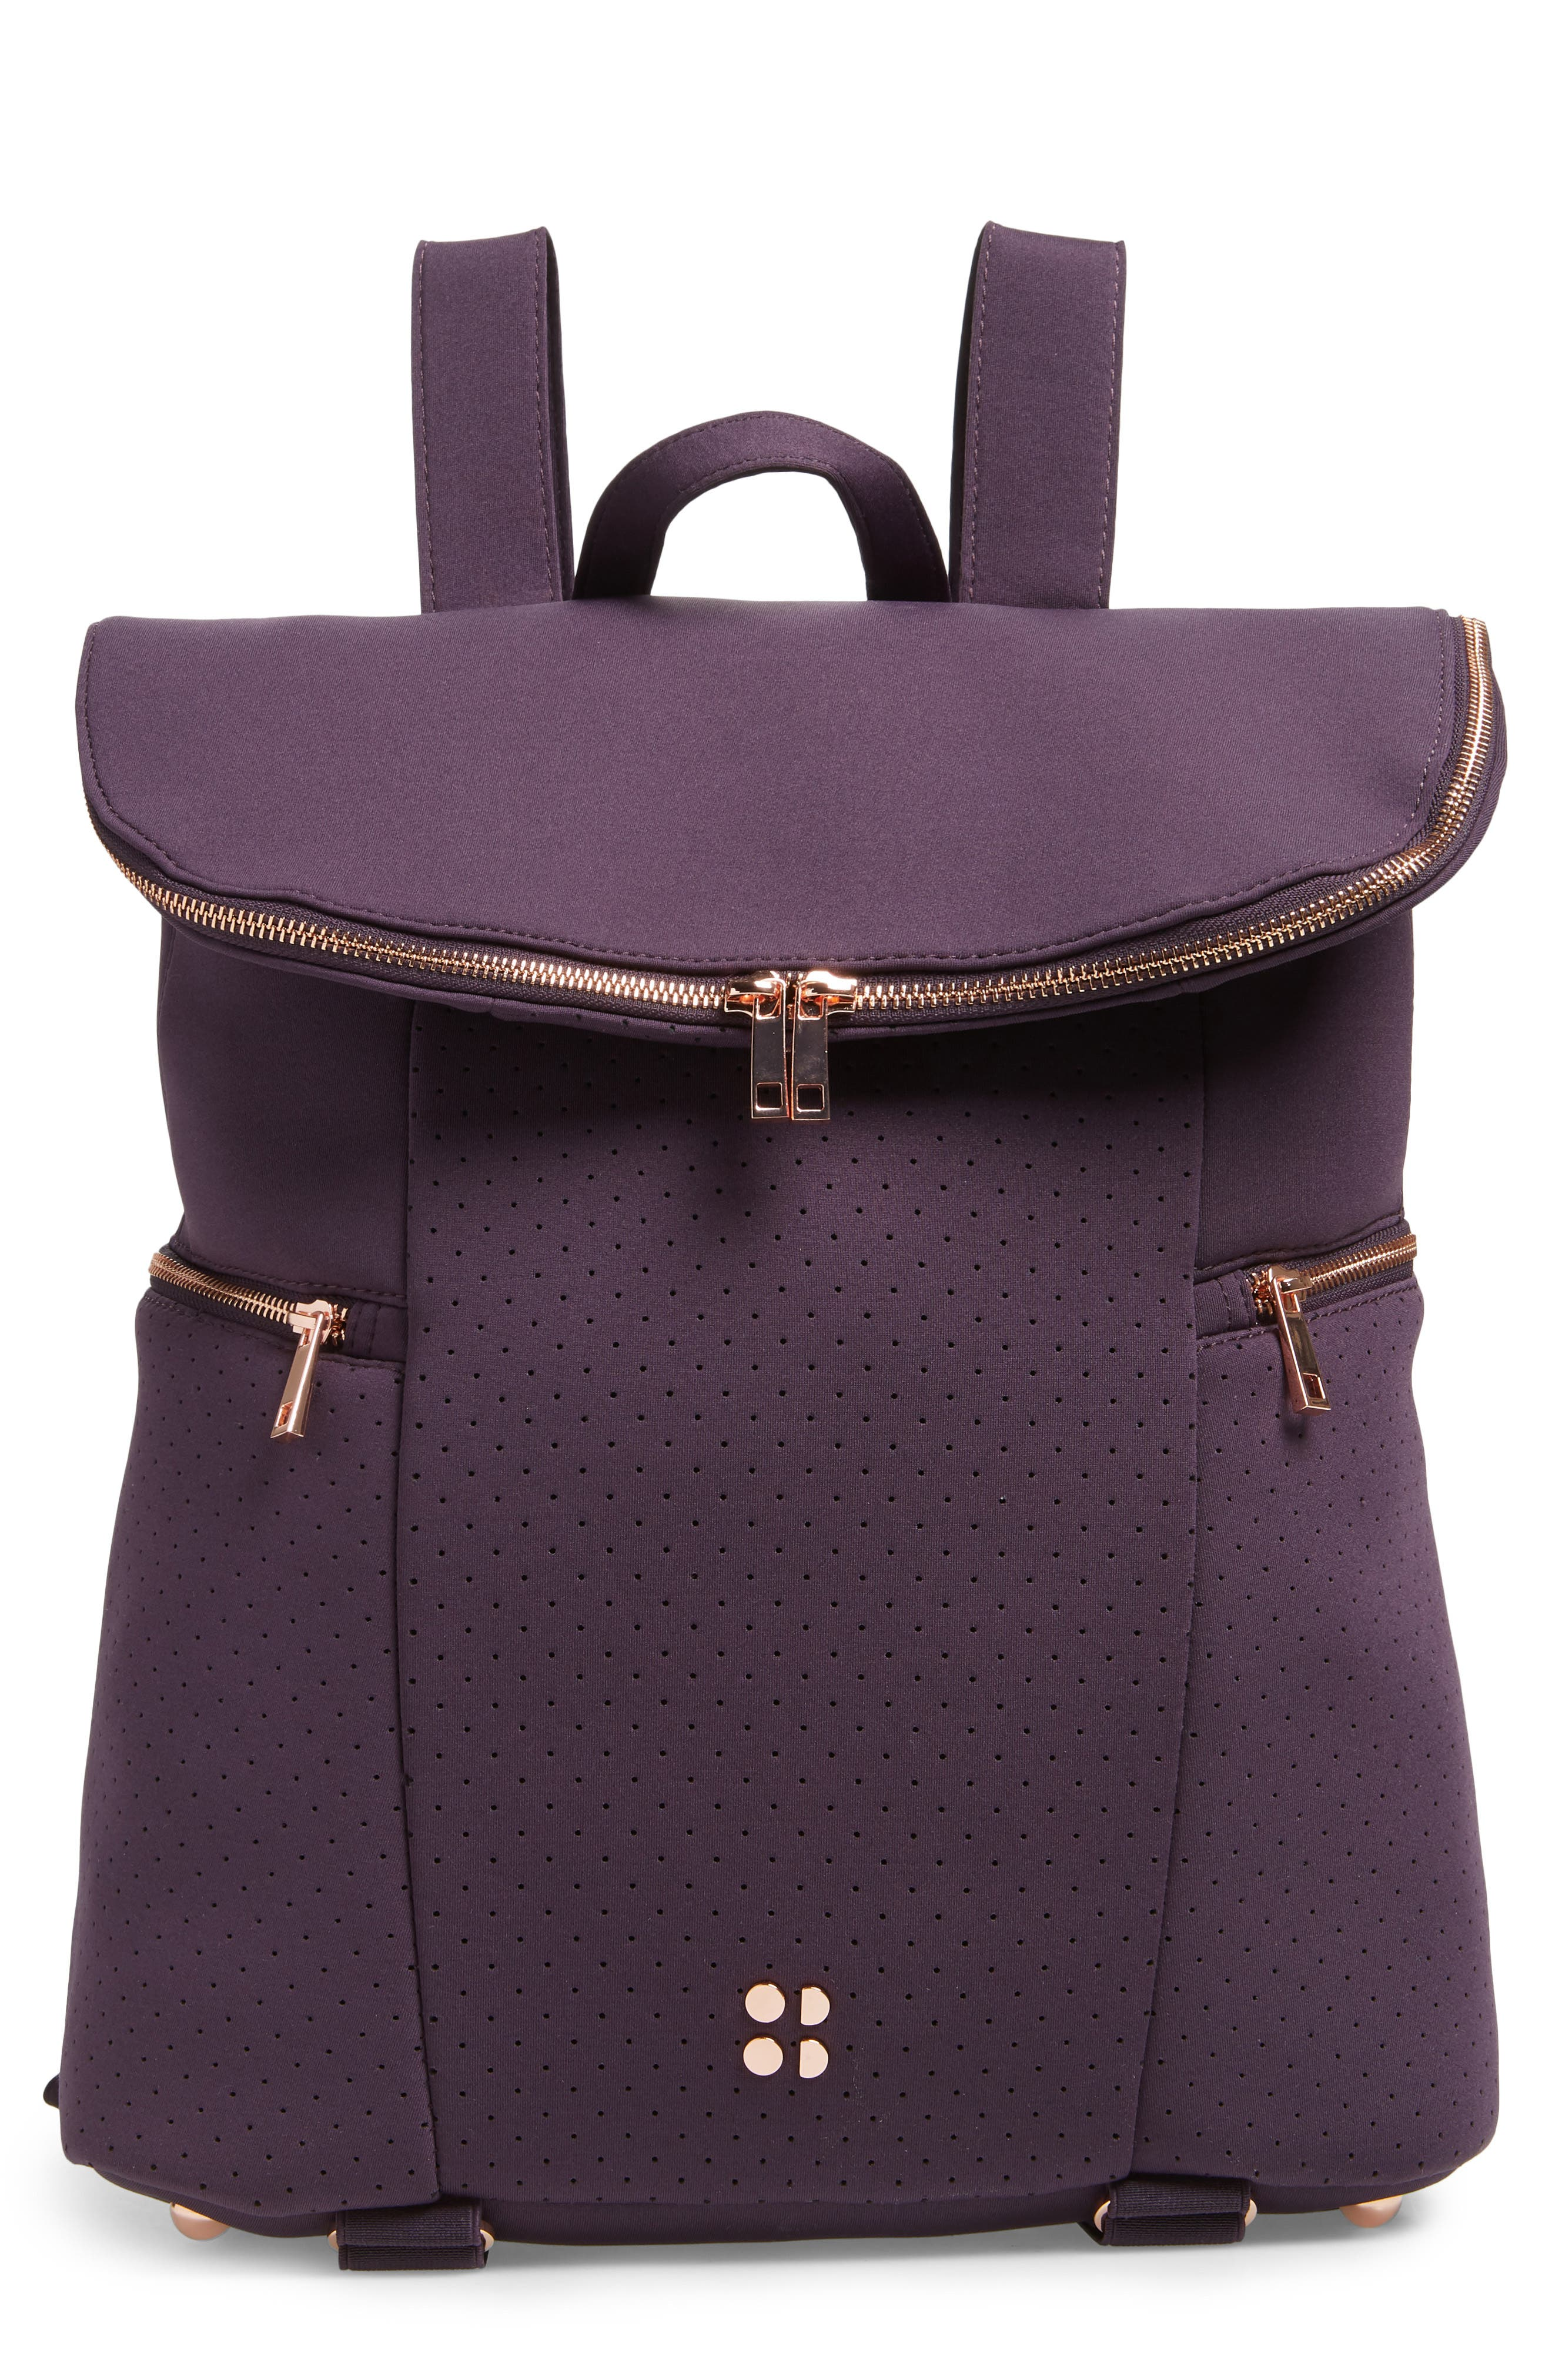 All Sport Backpack,                             Main thumbnail 1, color,                             AUBERGINE